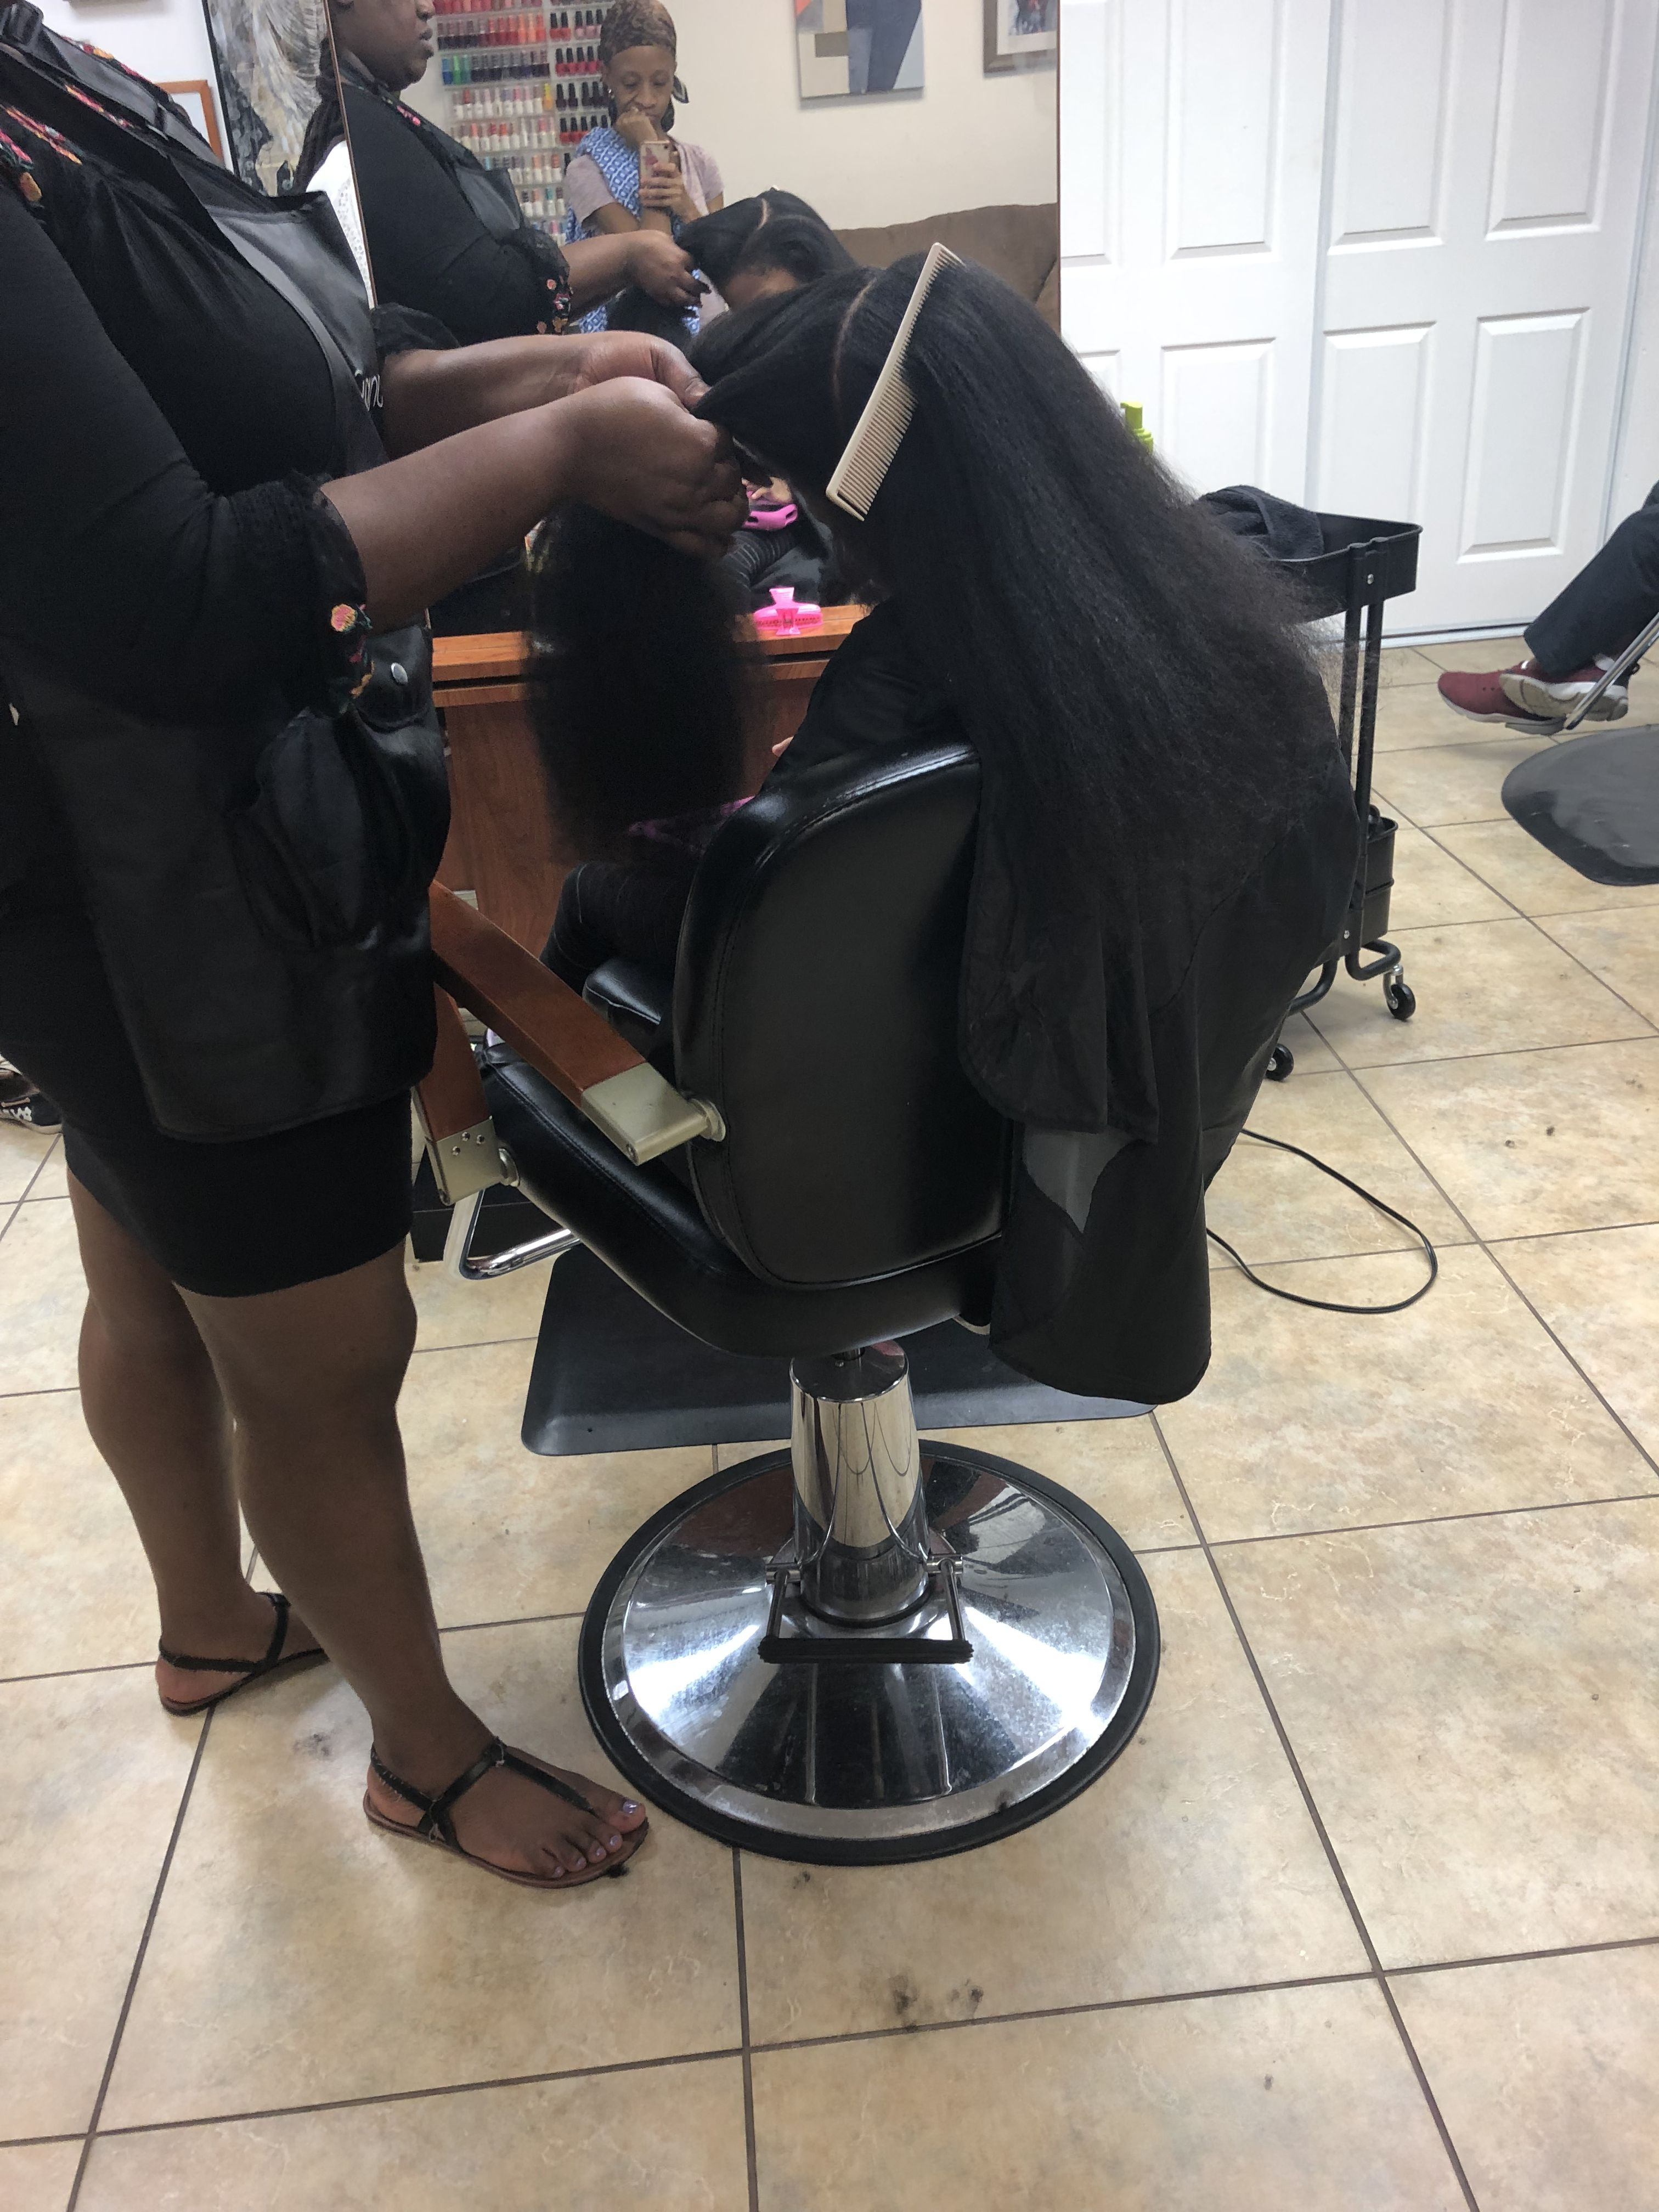 My Daughter First Time At The Natural Hair Salon Getting A Blow Dry Trim N Style Natural Hair Salons Natural Hair Styles Hair Salon